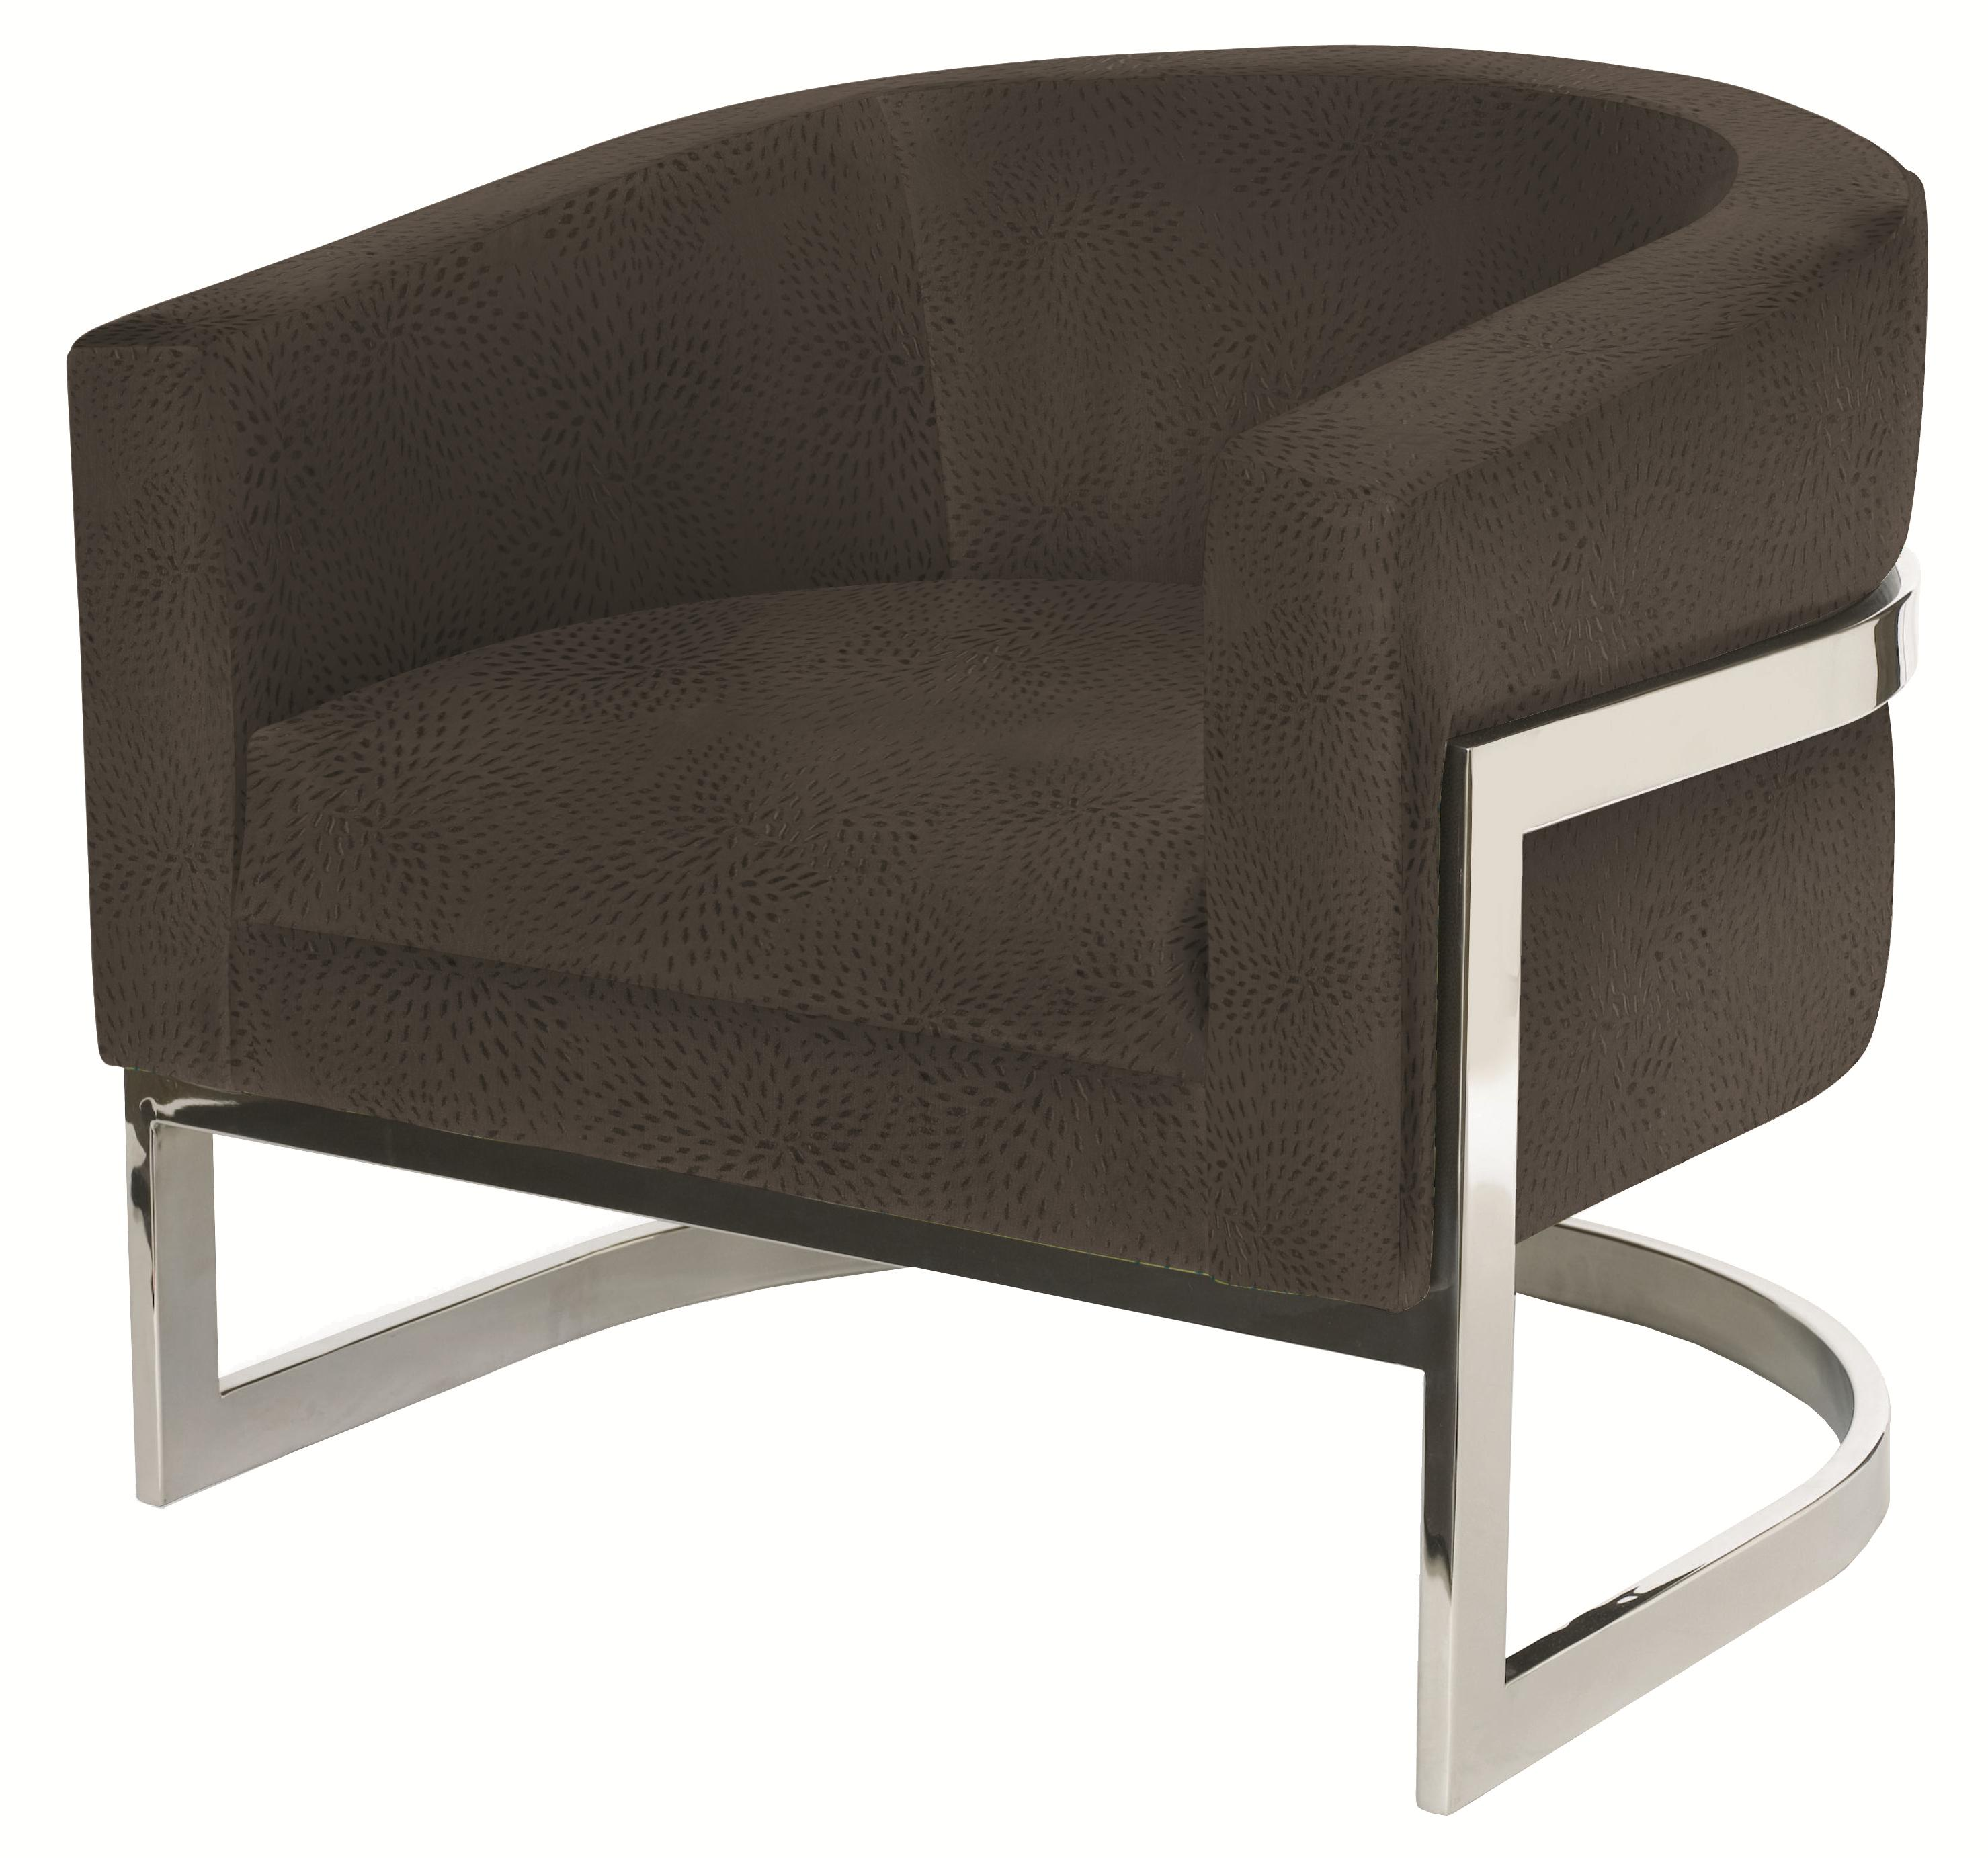 Upholstered Accents Callie Chair by Bernhardt at Baer's Furniture